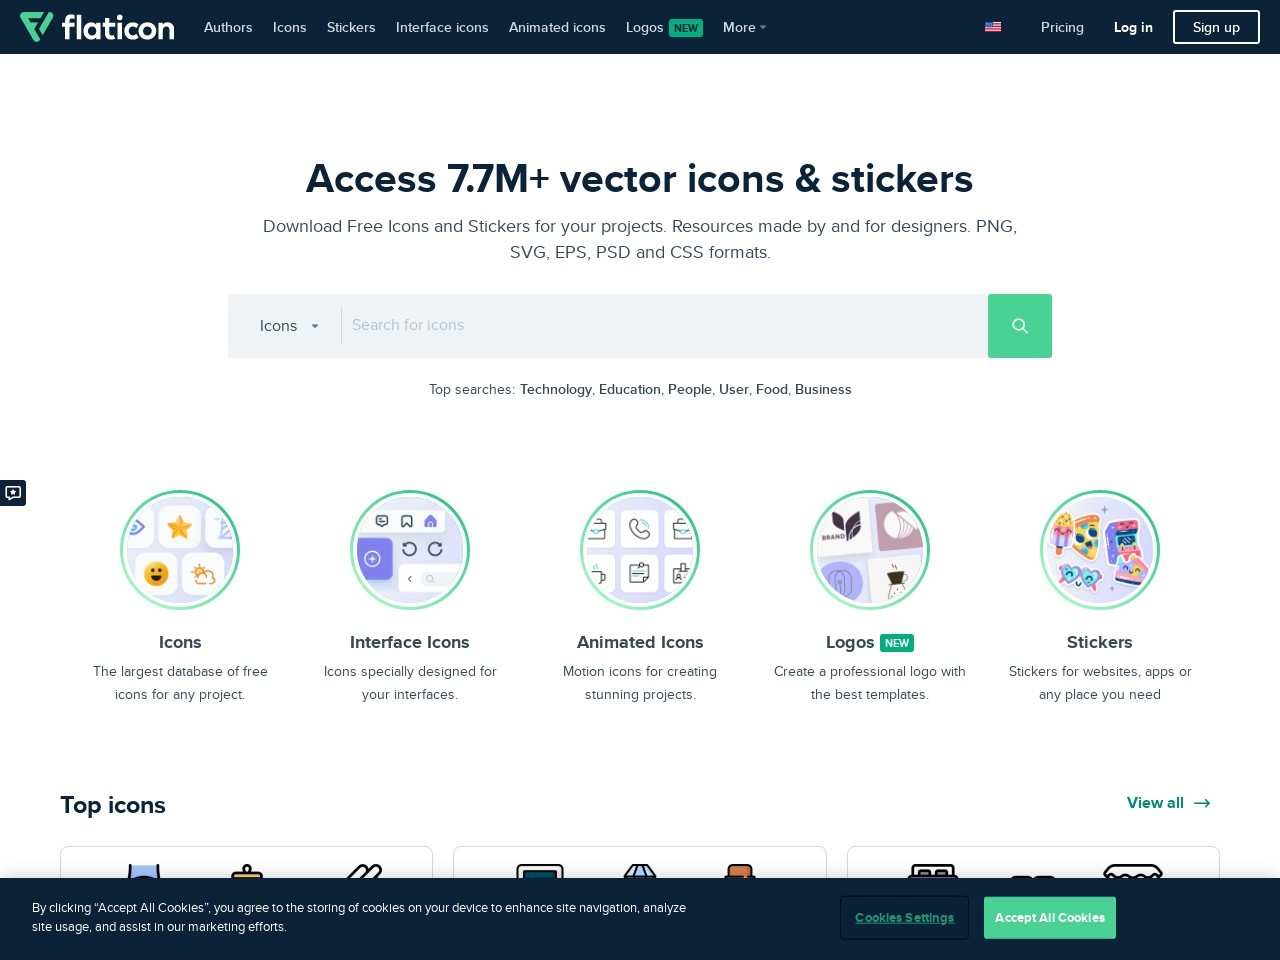 Accounting Icons - 7,065 free vector icons - Flaticon